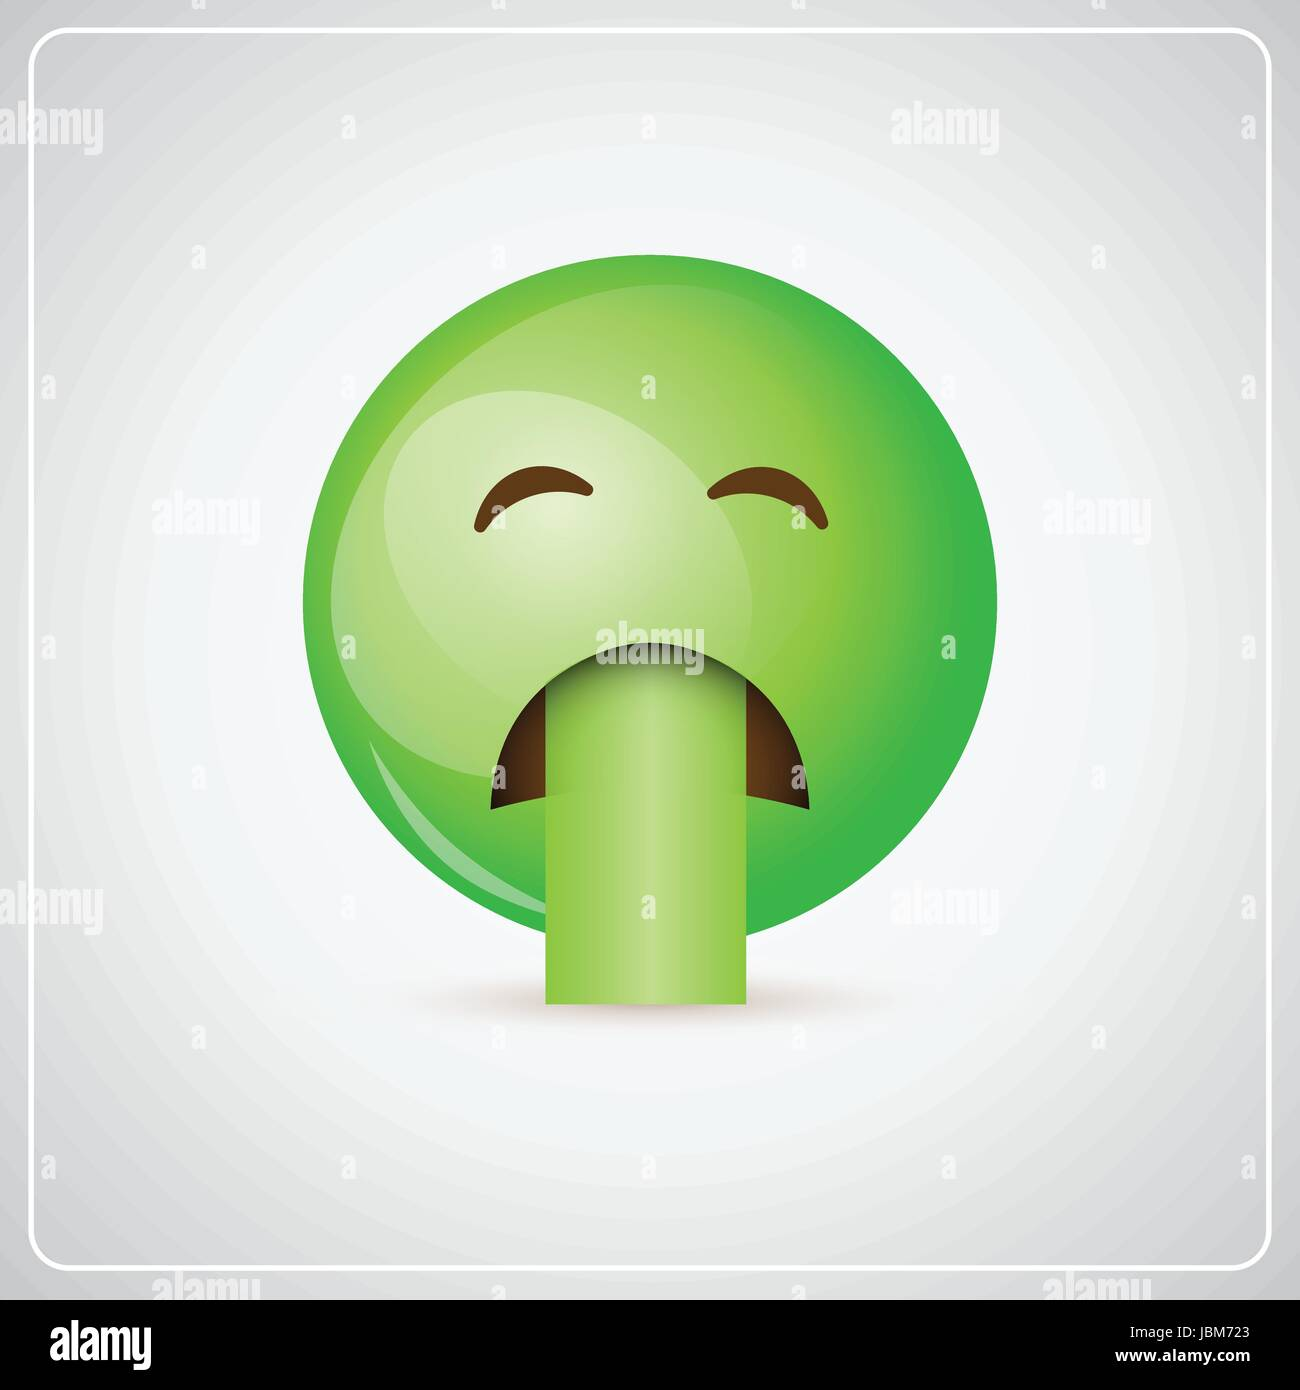 Green cartoon face sick feeling bad people emotion icon stock vector green cartoon face sick feeling bad people emotion icon thecheapjerseys Image collections